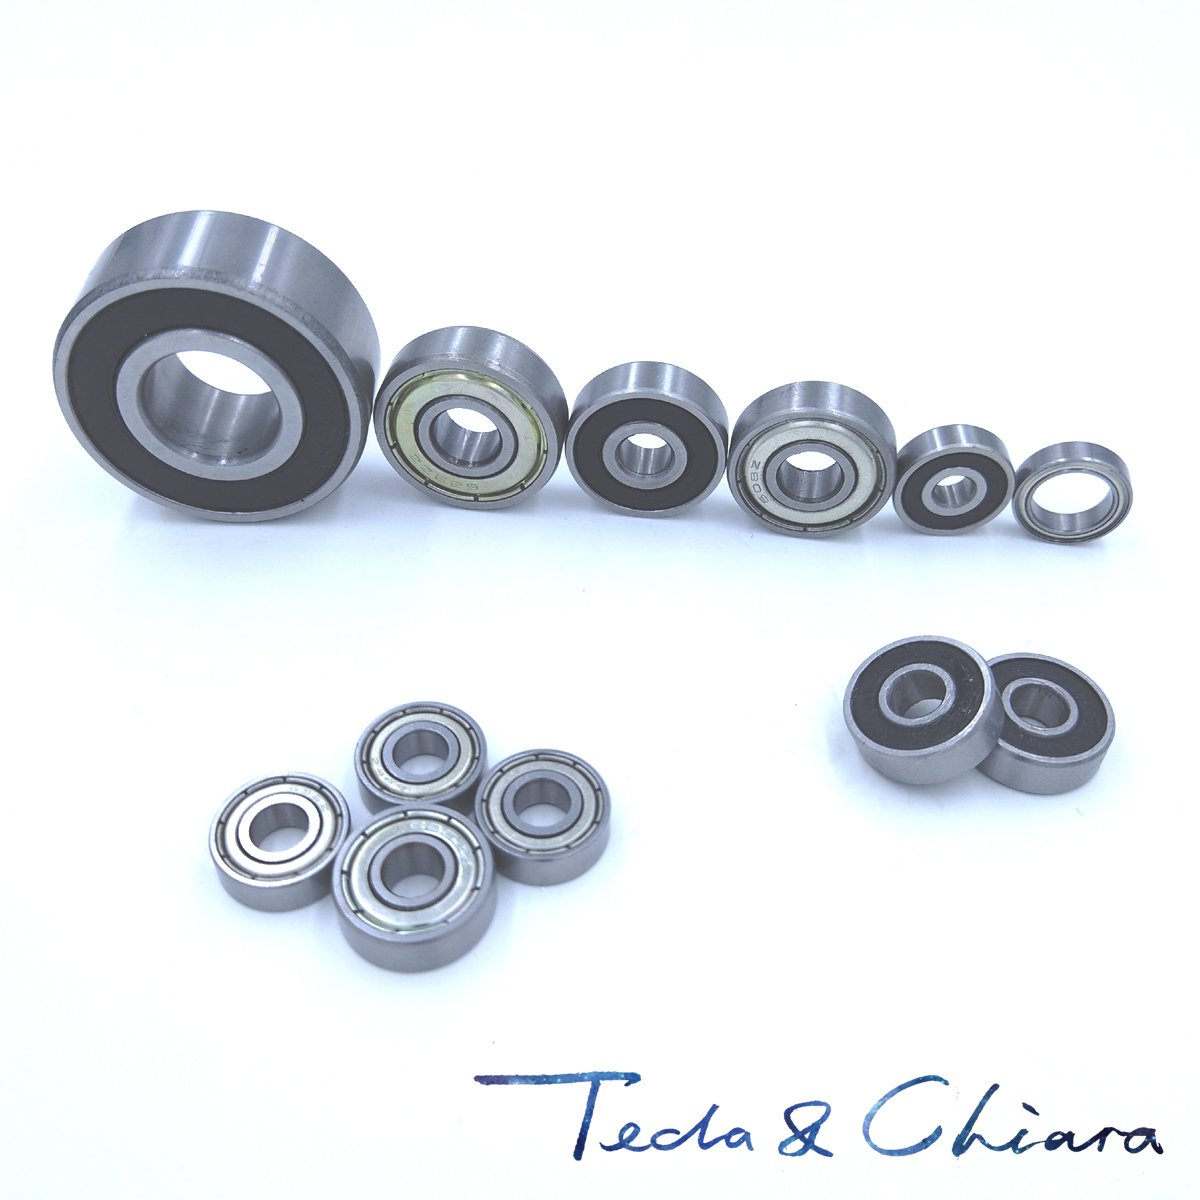 10Pcs 6802 <font><b>6802ZZ</b></font> 6802RS 6802-2Z 6802Z 6802-2RS ZZ RS RZ 2RZ Deep Groove Ball Bearings 15 x 24 x 5mm High Quality image